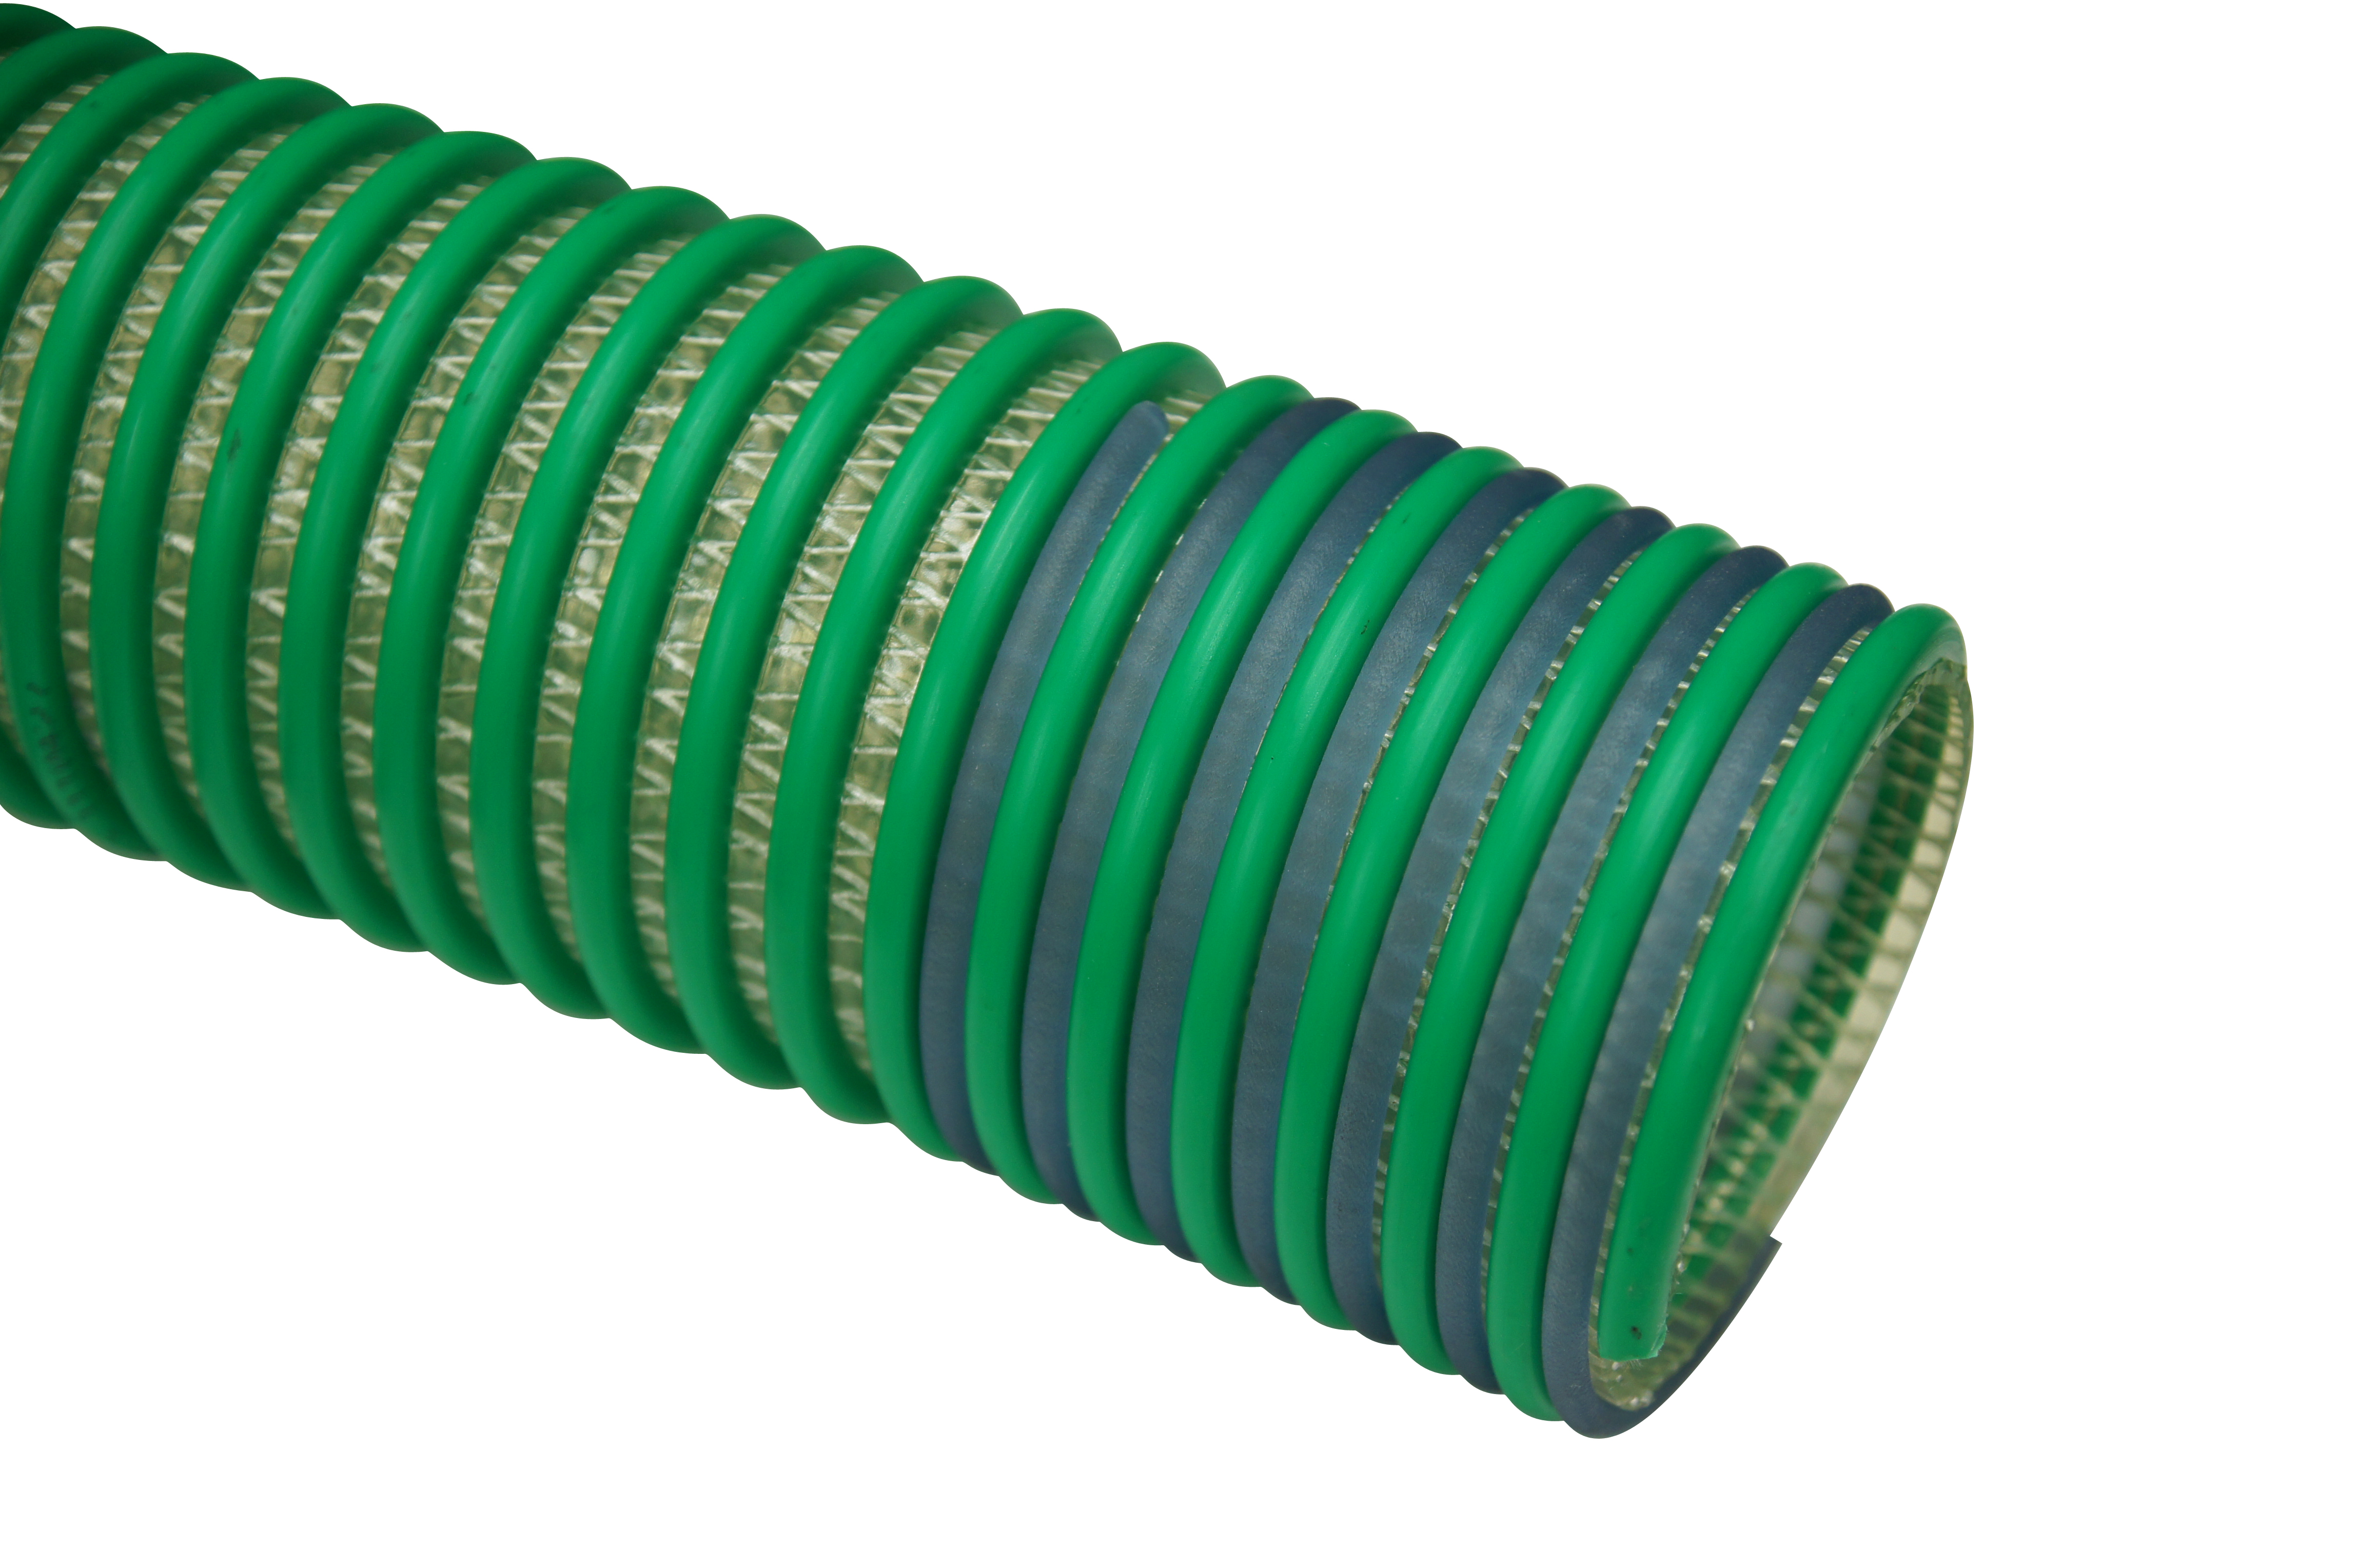 PicturesCategory/Banding Coil.jpg